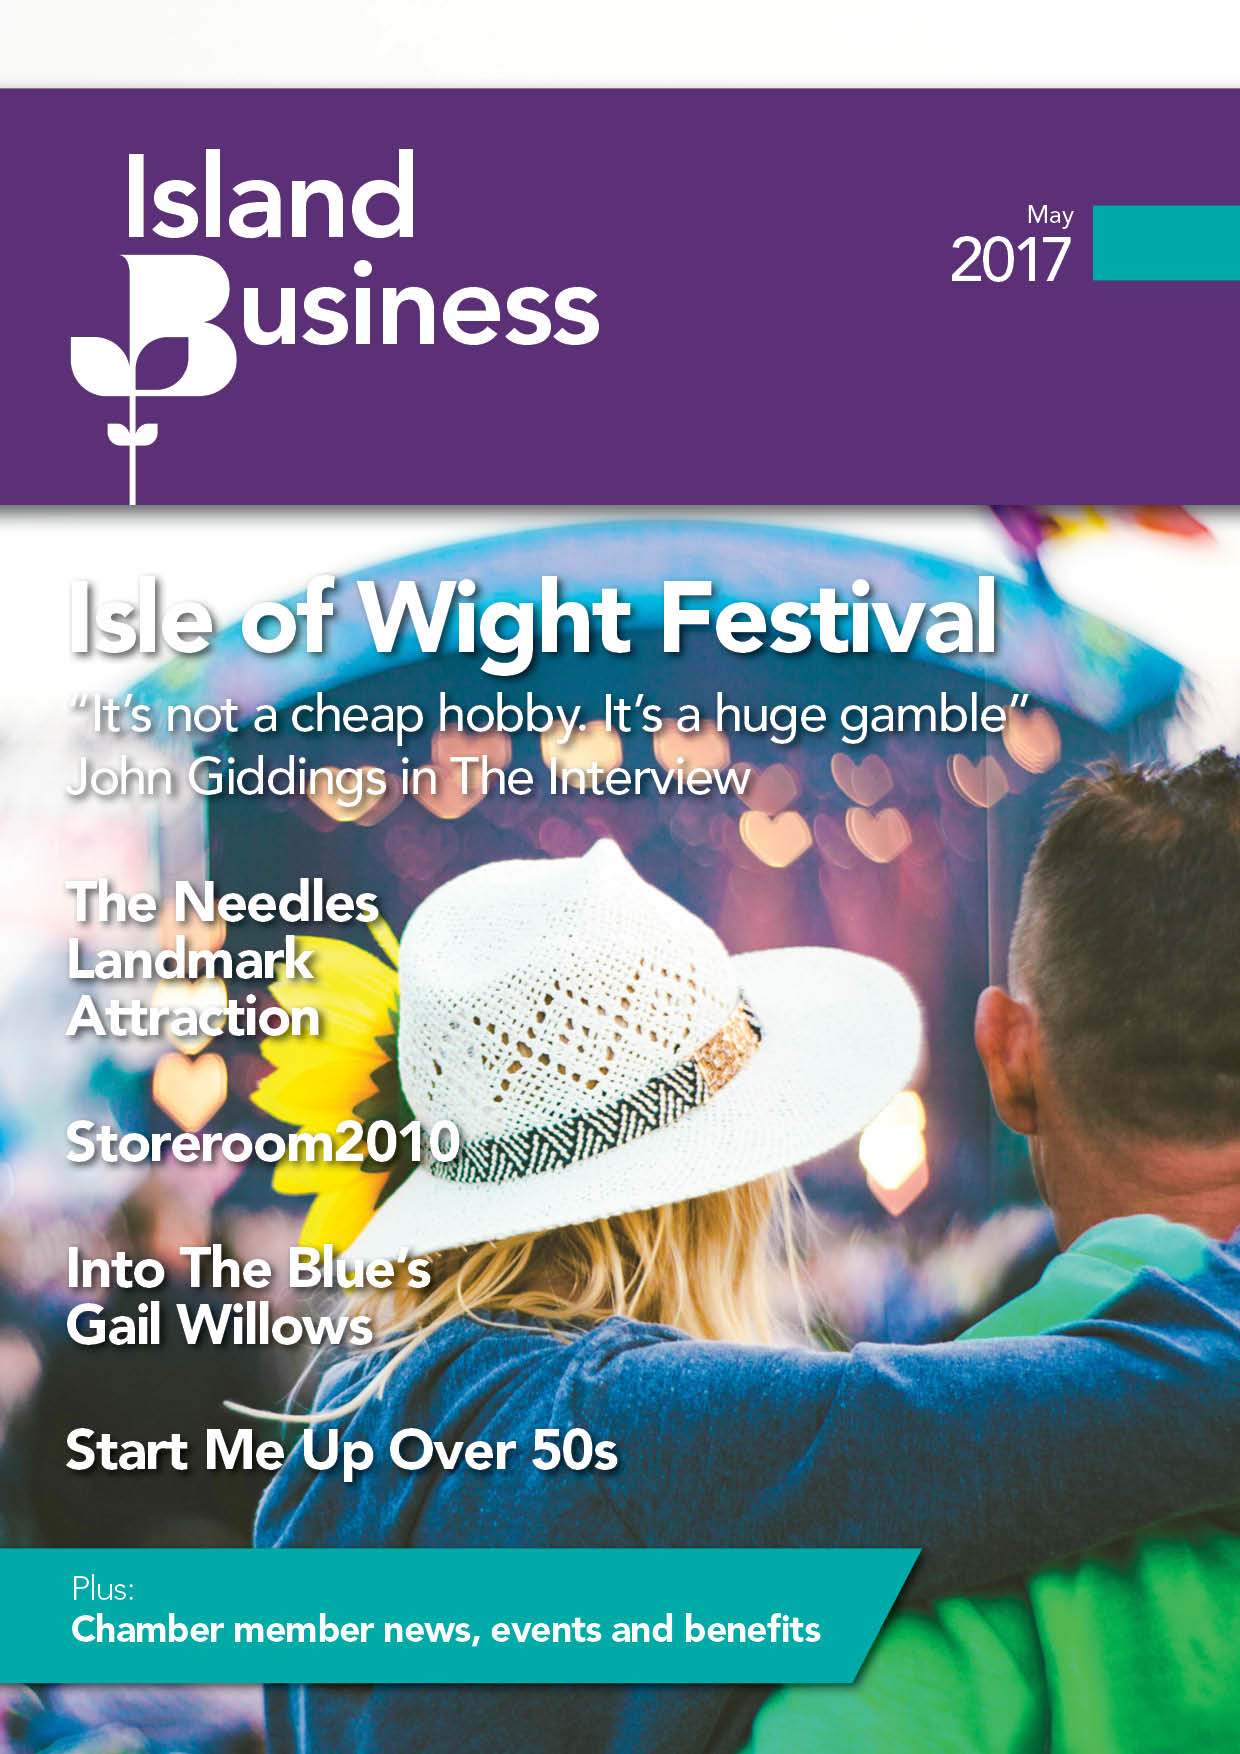 Island Business May 2017